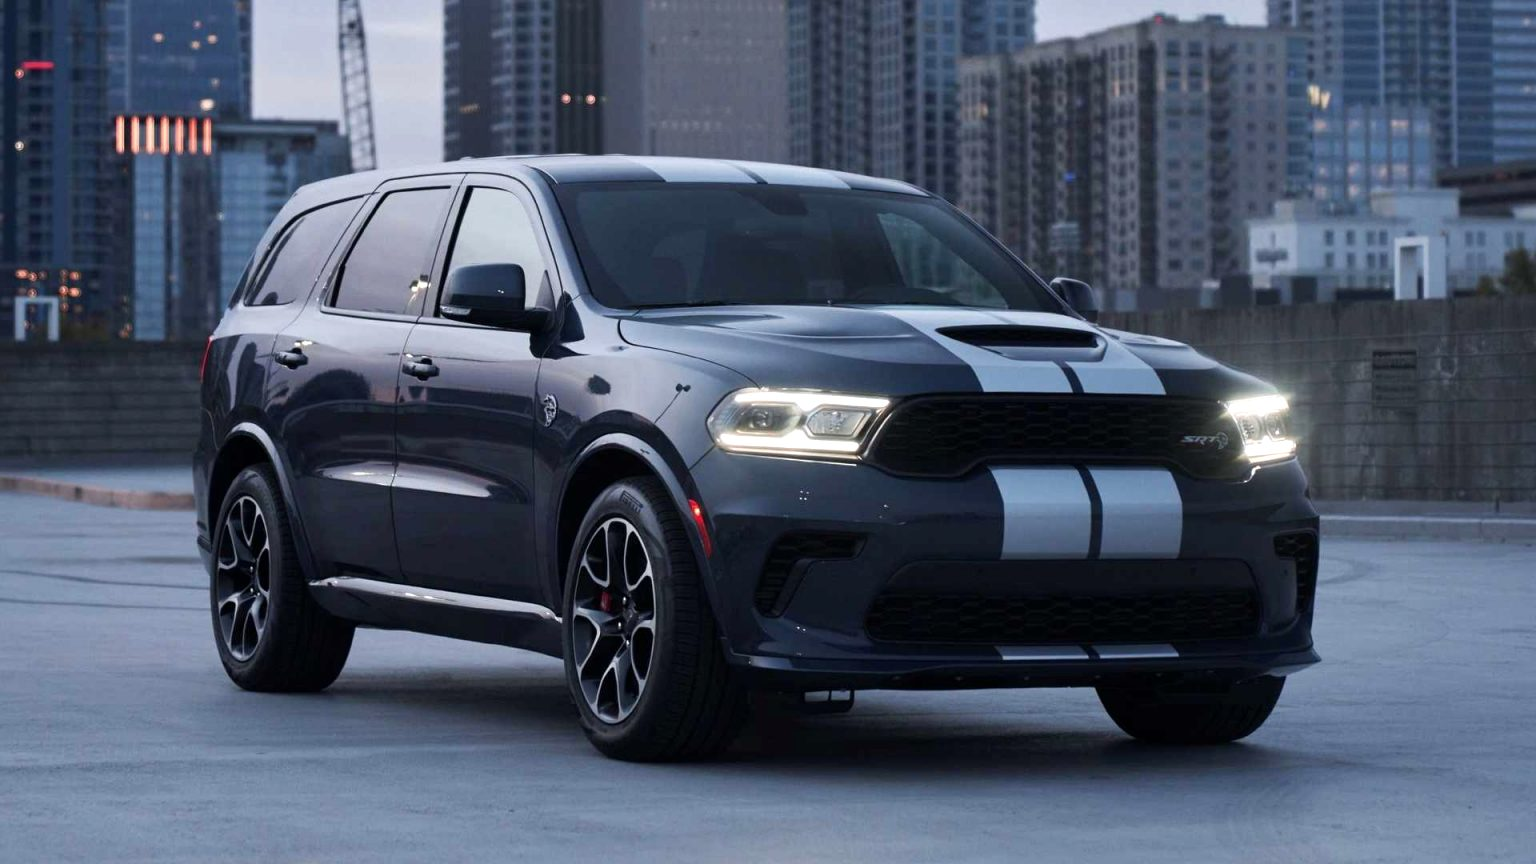 dodge durango 2021 price in uae Review and Release date